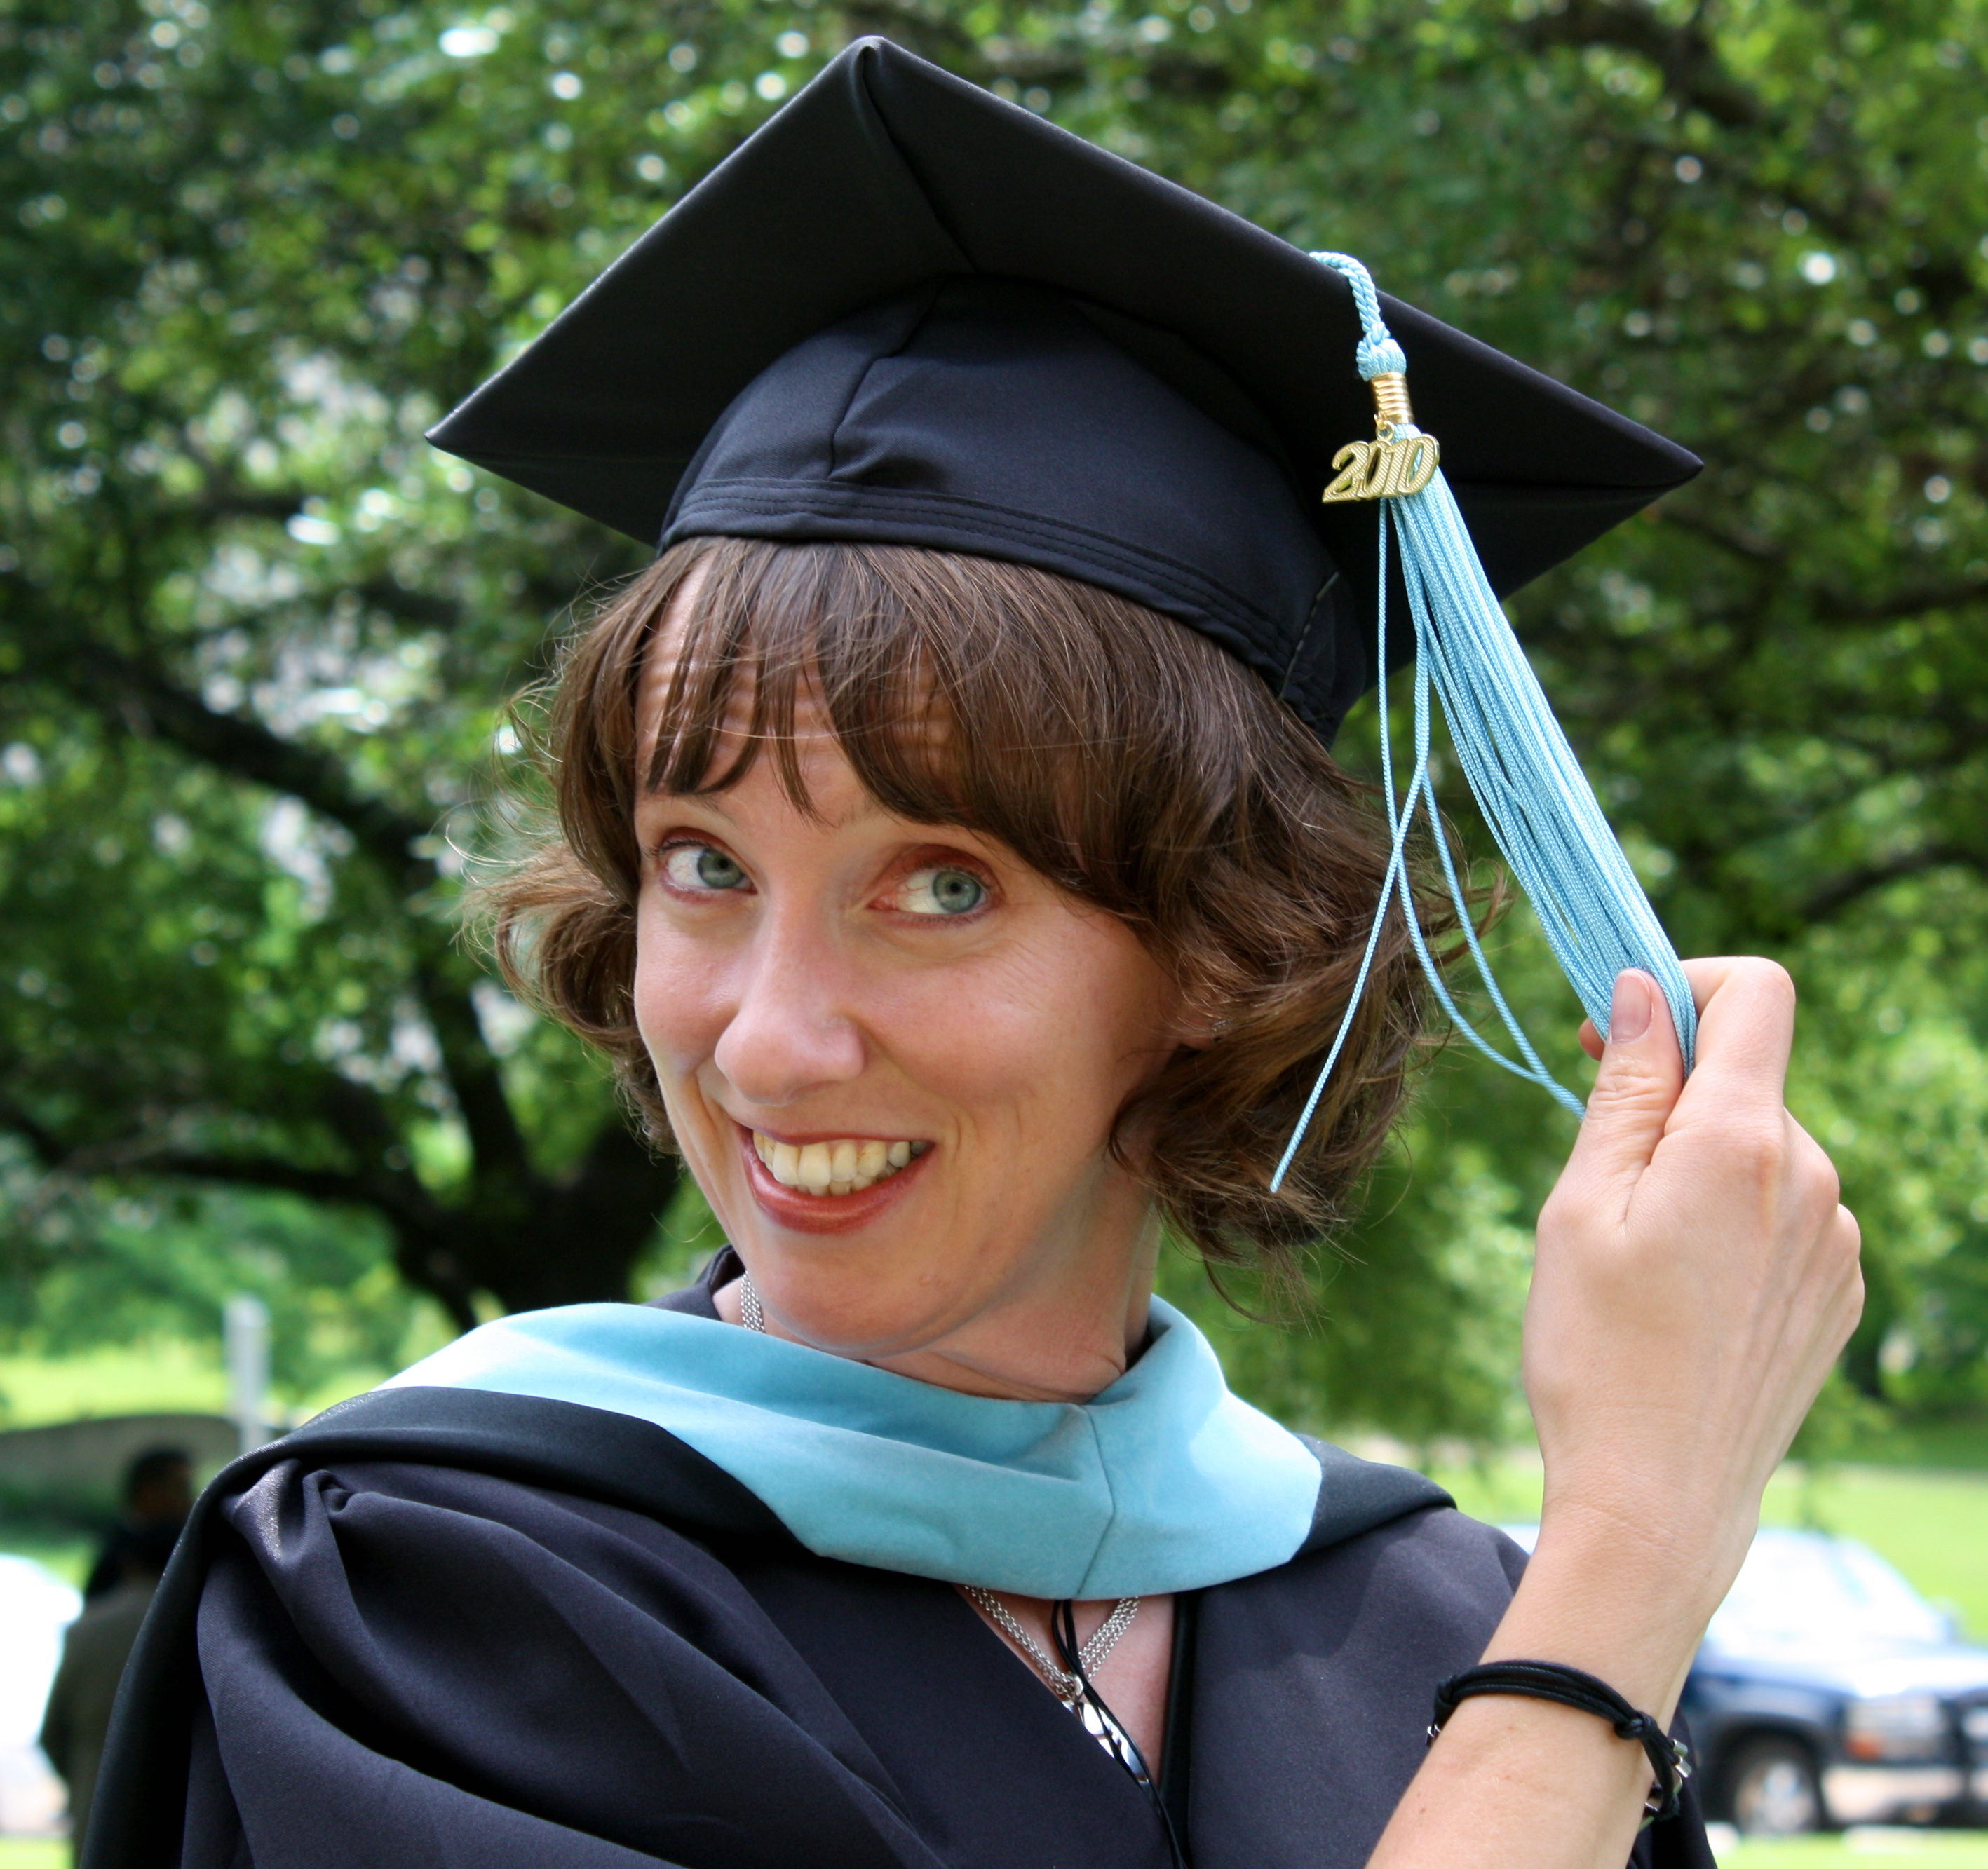 Graduating with a Master's Degree after Writing a Brilliant Thesis